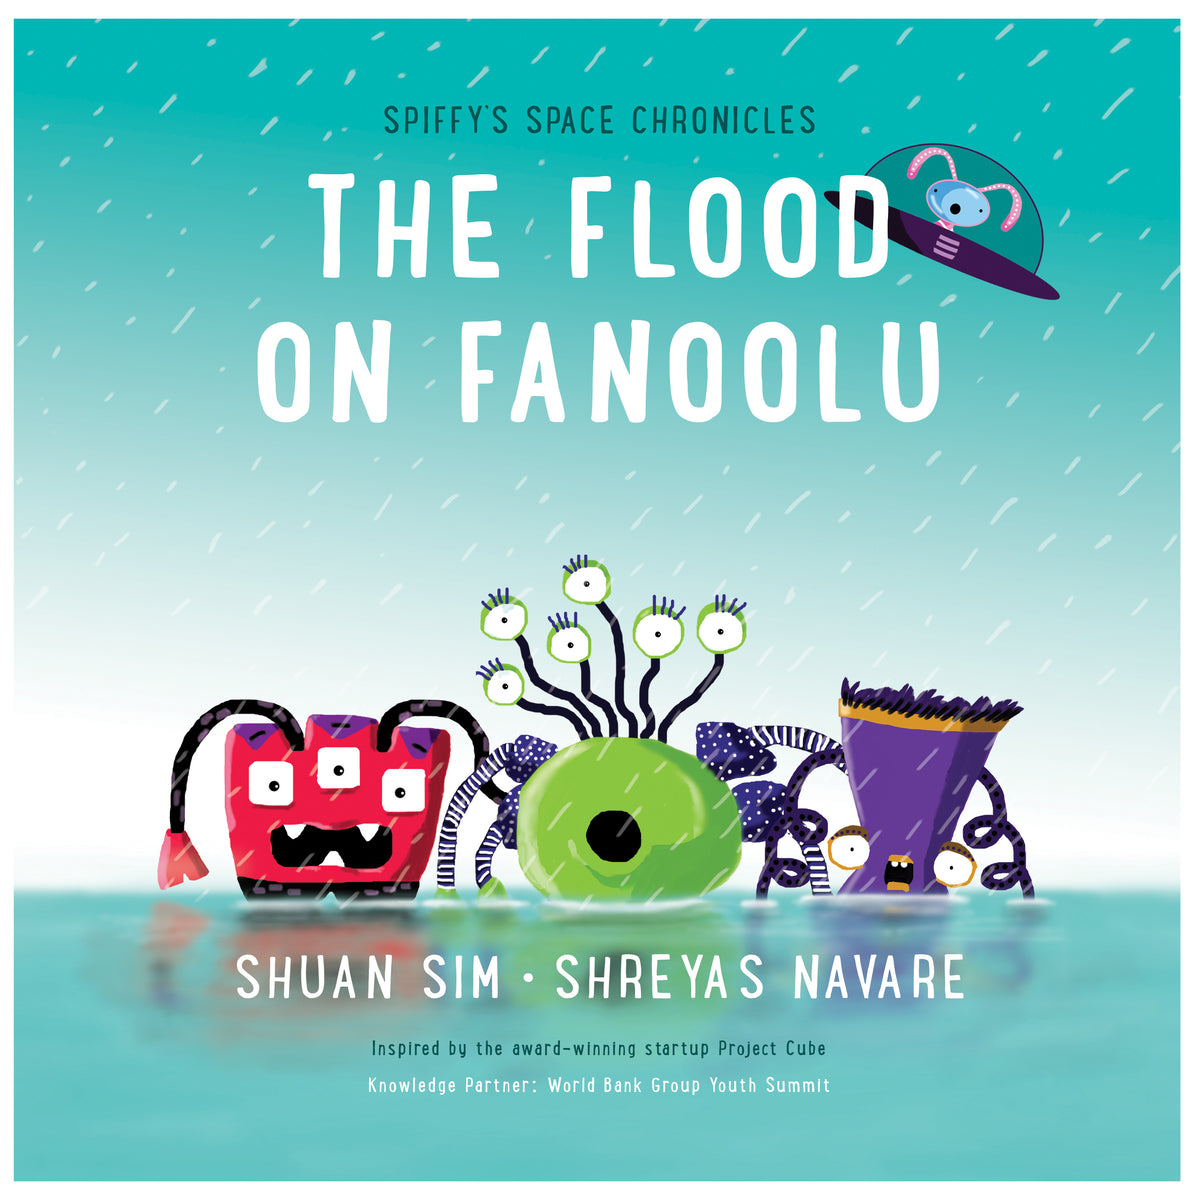 Cover of the book The Flood on Fanoolu featuring Spiffy and 3 other characters